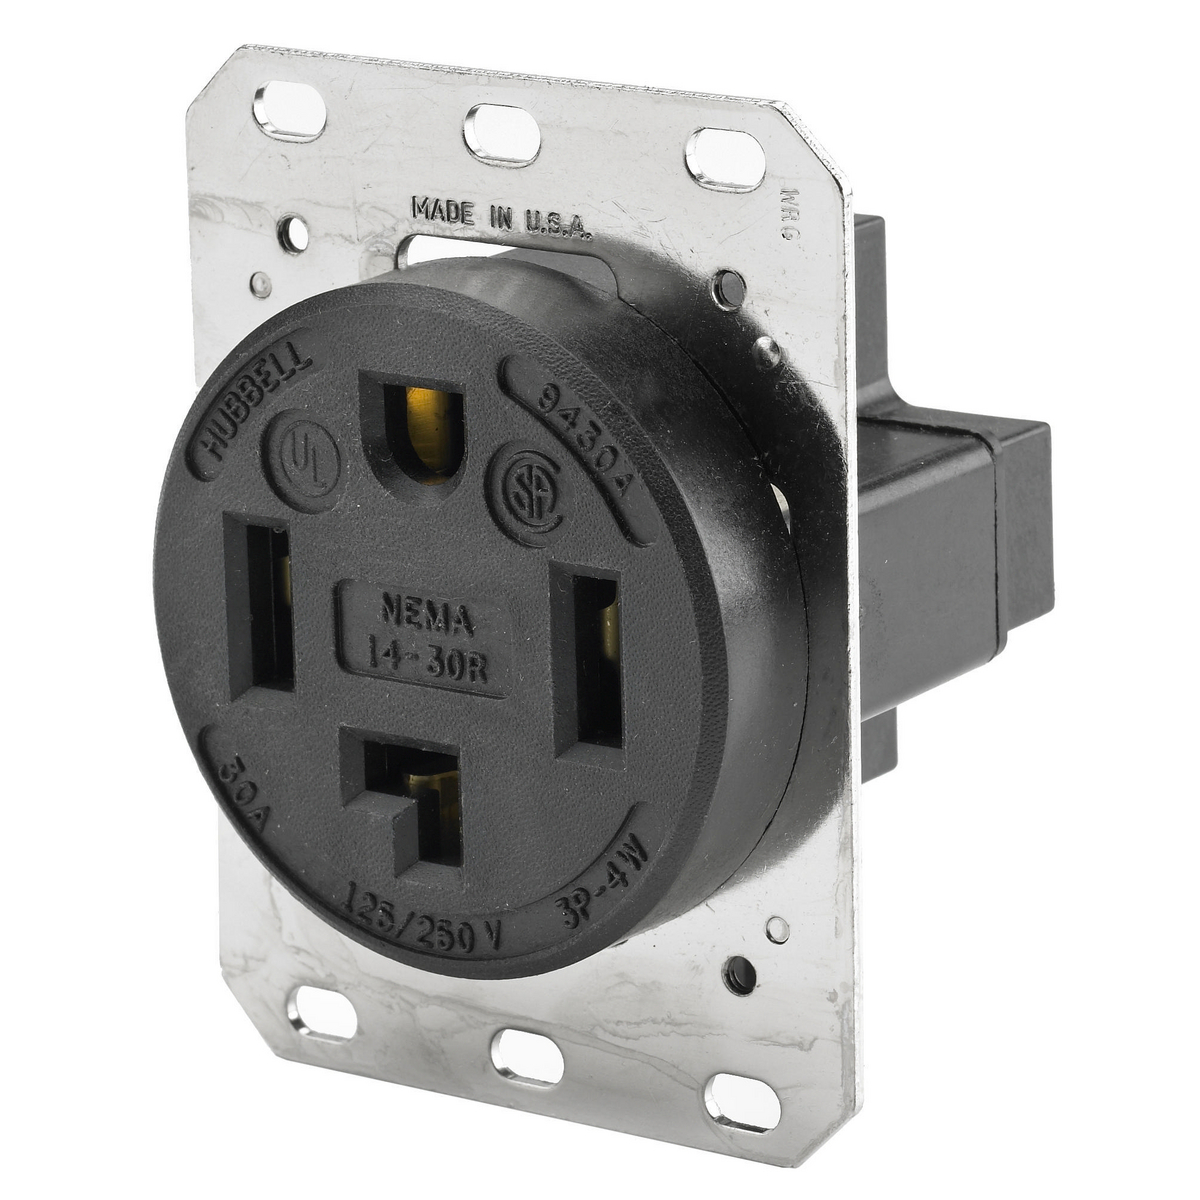 Hbl9430a Brand Wiring Device Kellems A Wall Socket